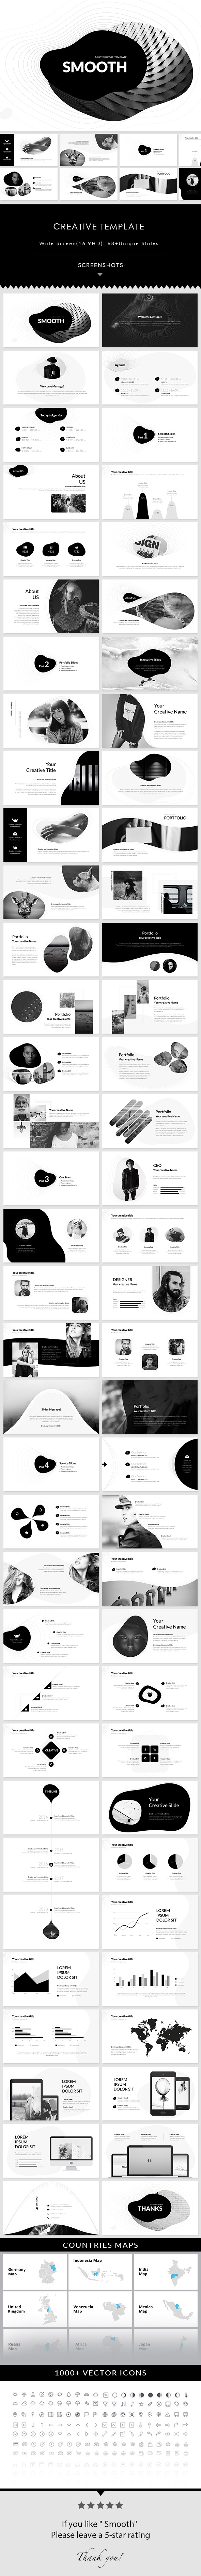 Smooth - PowerPoint Presentation Template - Creative PowerPoint Templates